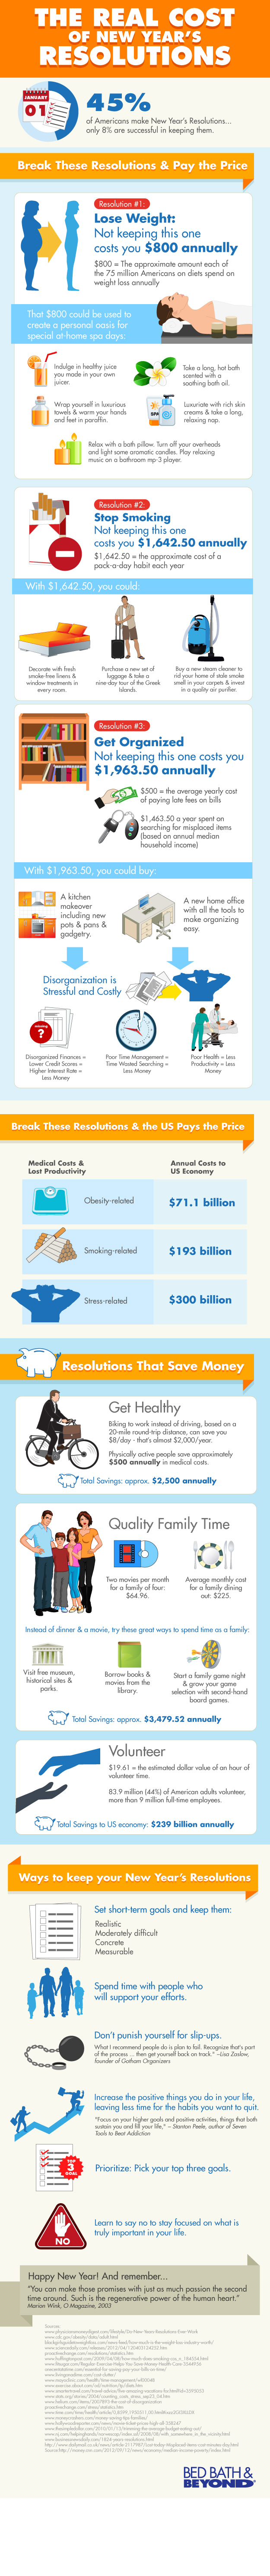 the-real-cost-of-new-years-resolutions_50f6c02cd499d